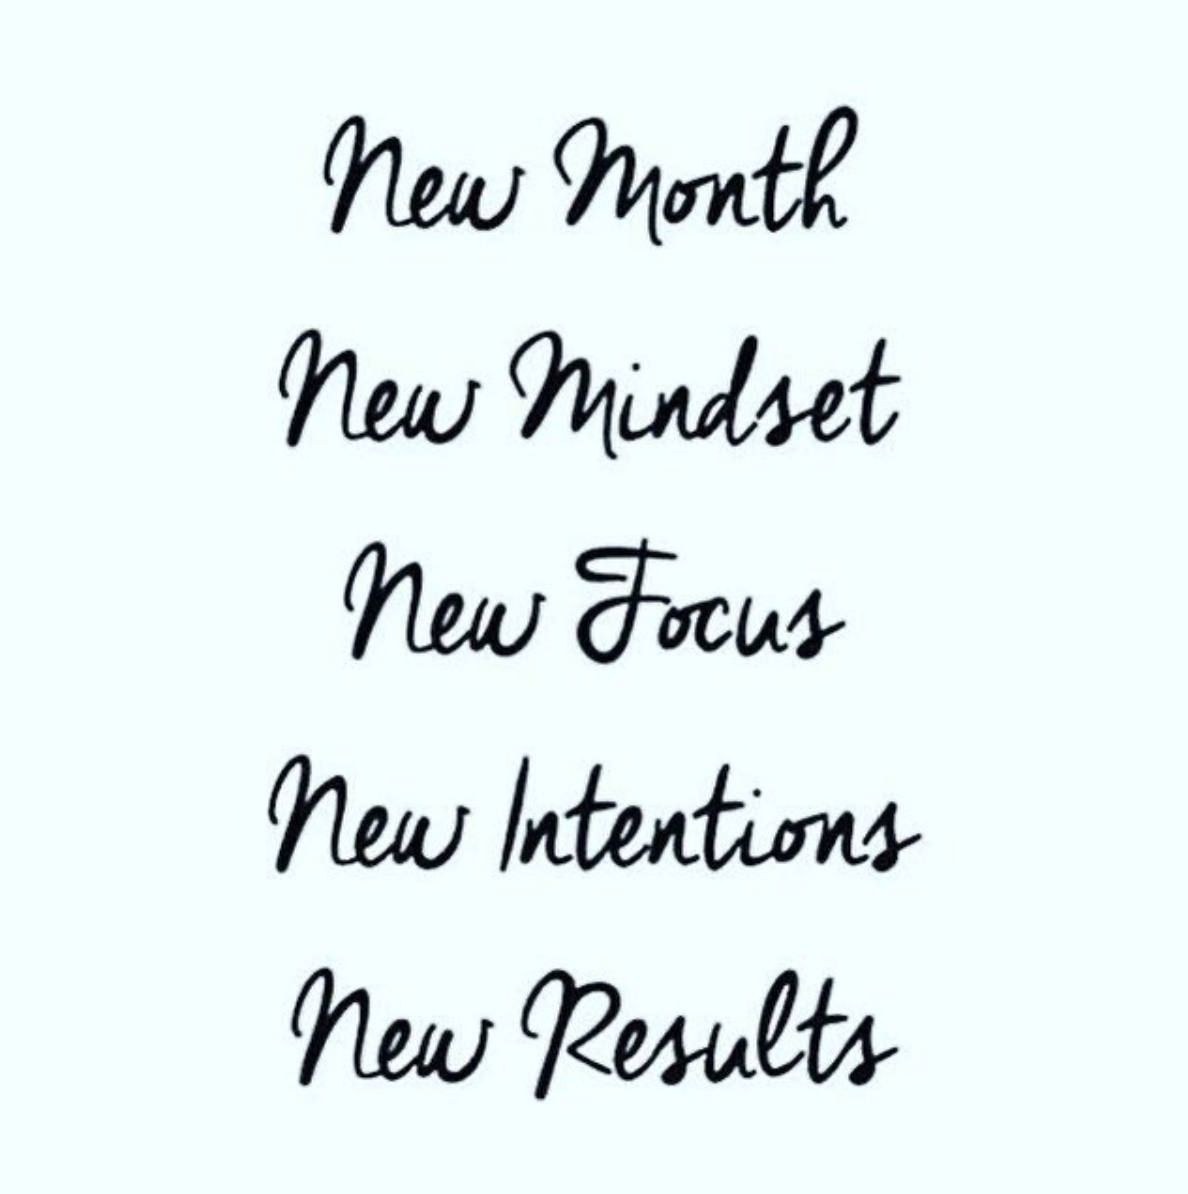 [Image] New month. New mindset. New focus. New intentions. New results.